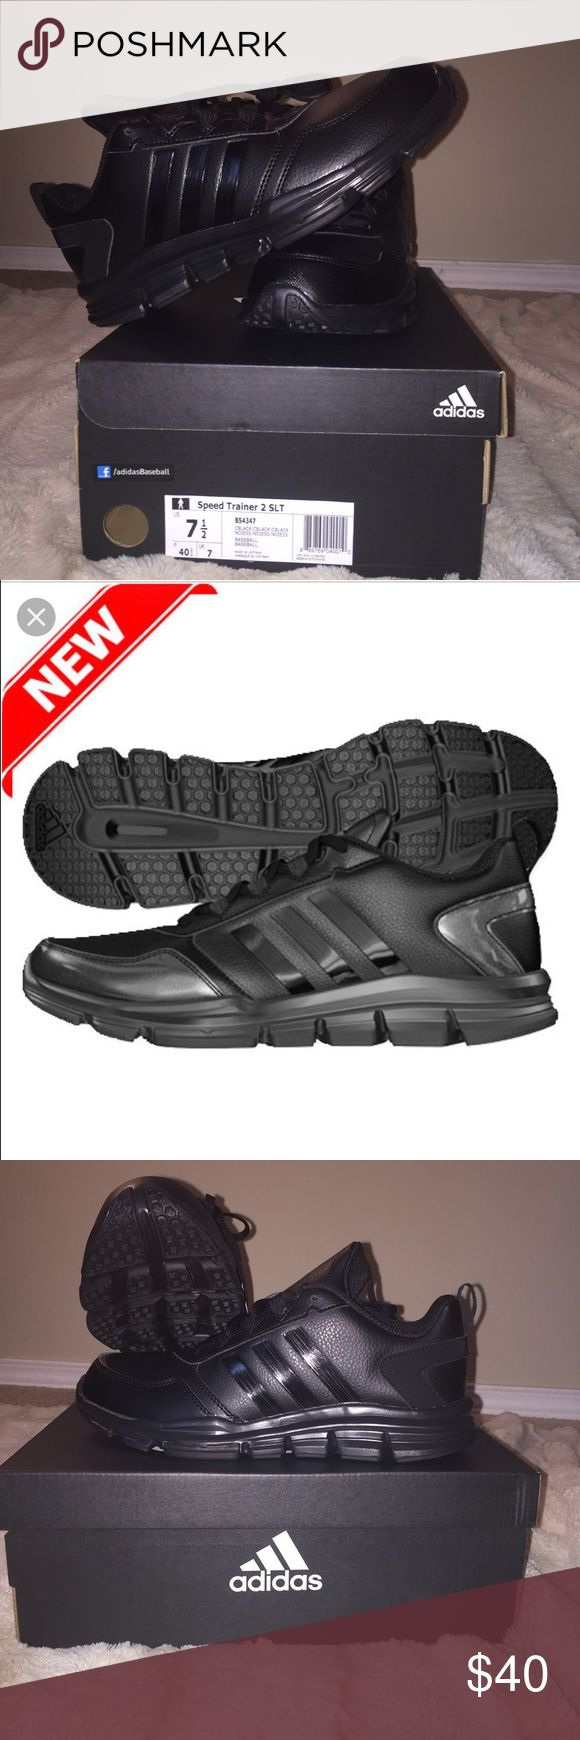 Women's Adidas Speed Trainer 2 All Black Adidas shoes never been worn with box and tags! This was just the wrong size that I accidentally got! Great deal, comment for questions! Adidas Shoes Athletic Shoes